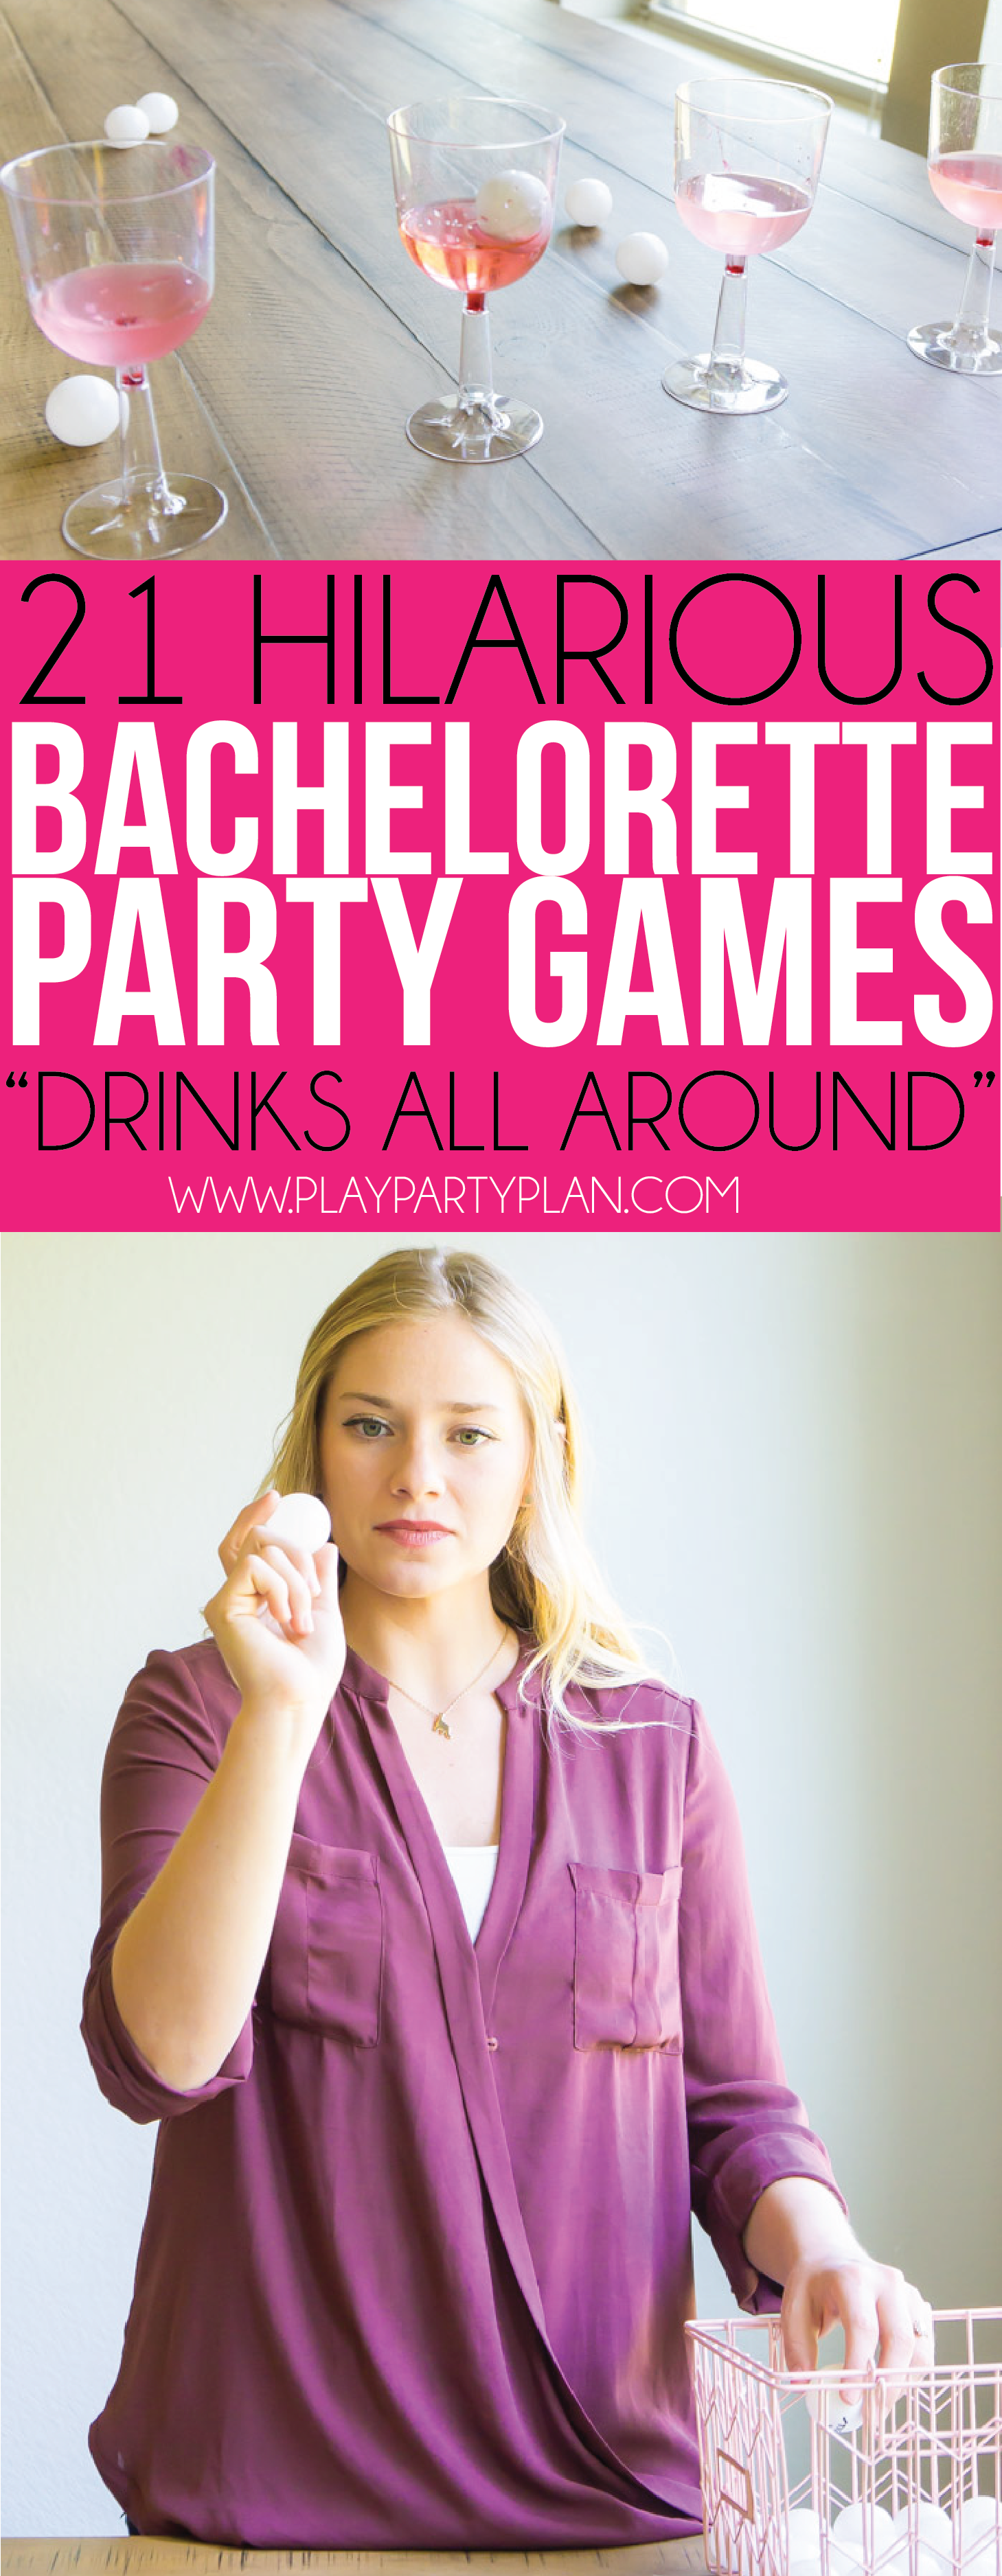 See who can get ping pong balls into cups first in these fun bachelorette party games